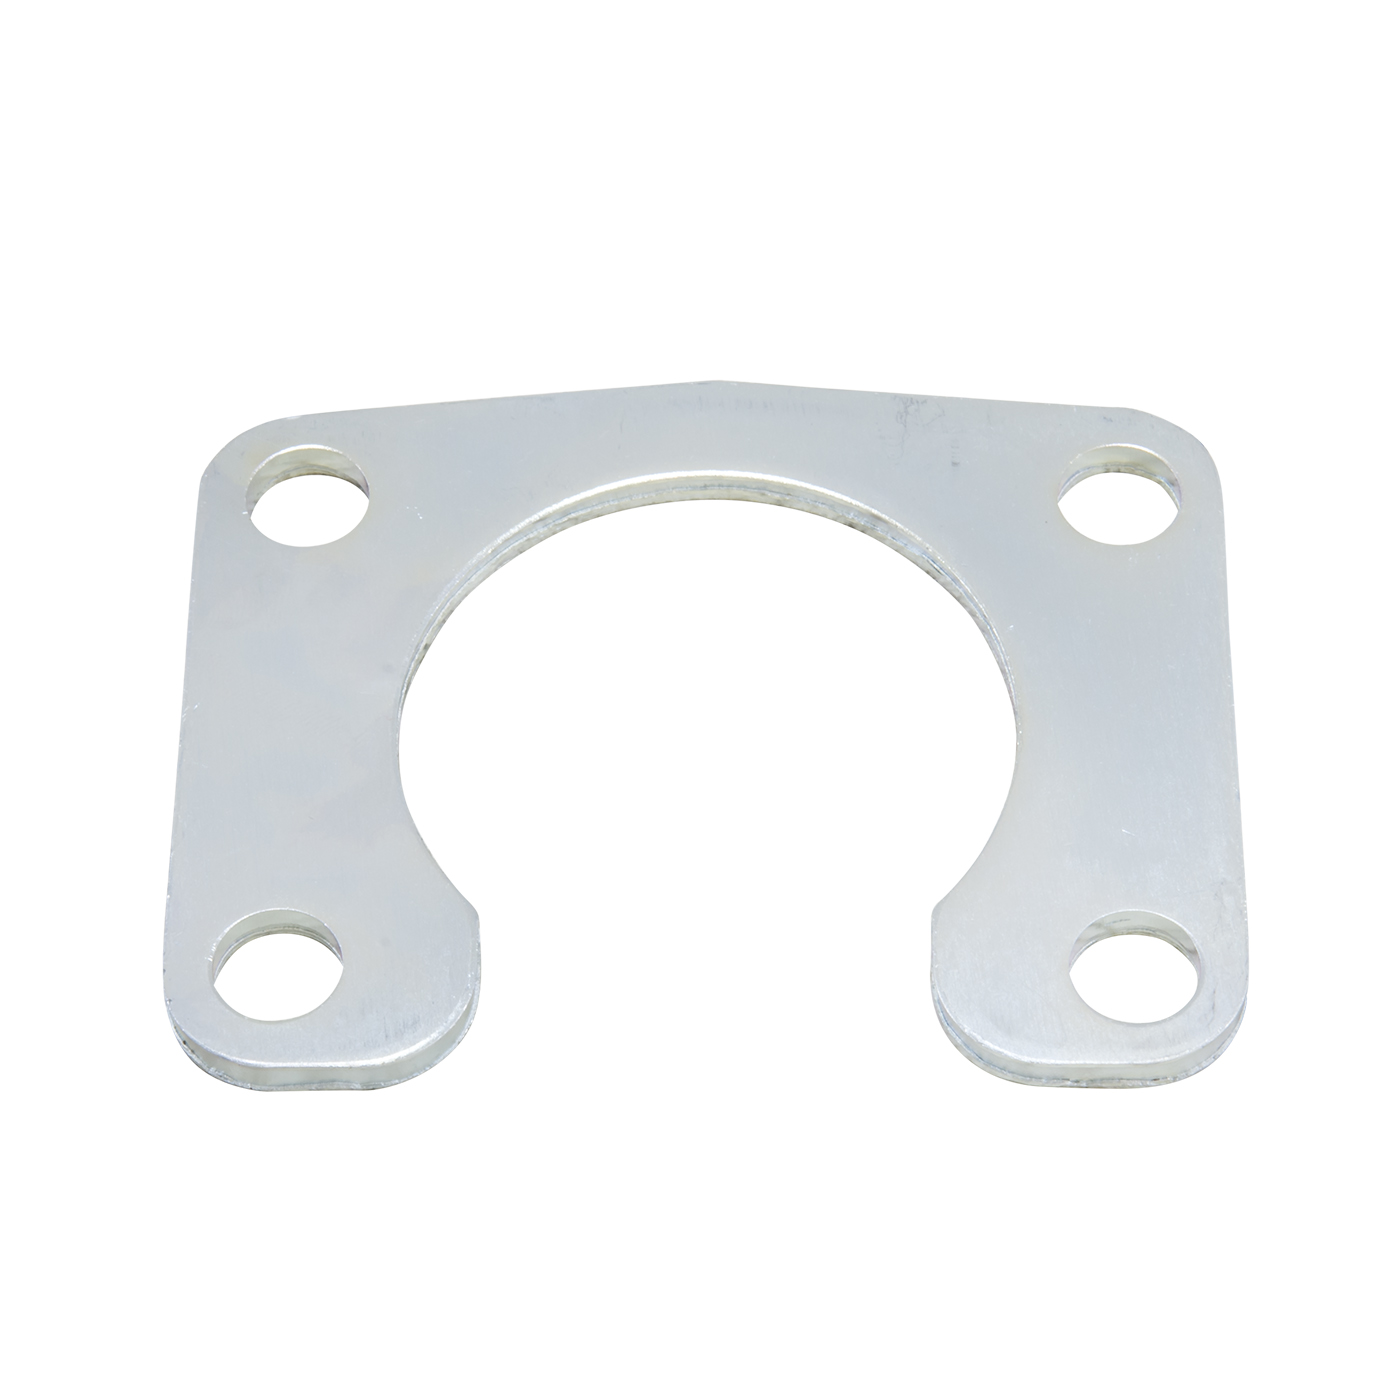 YSPRET-005 - Axle bearing retainer for Ford 9